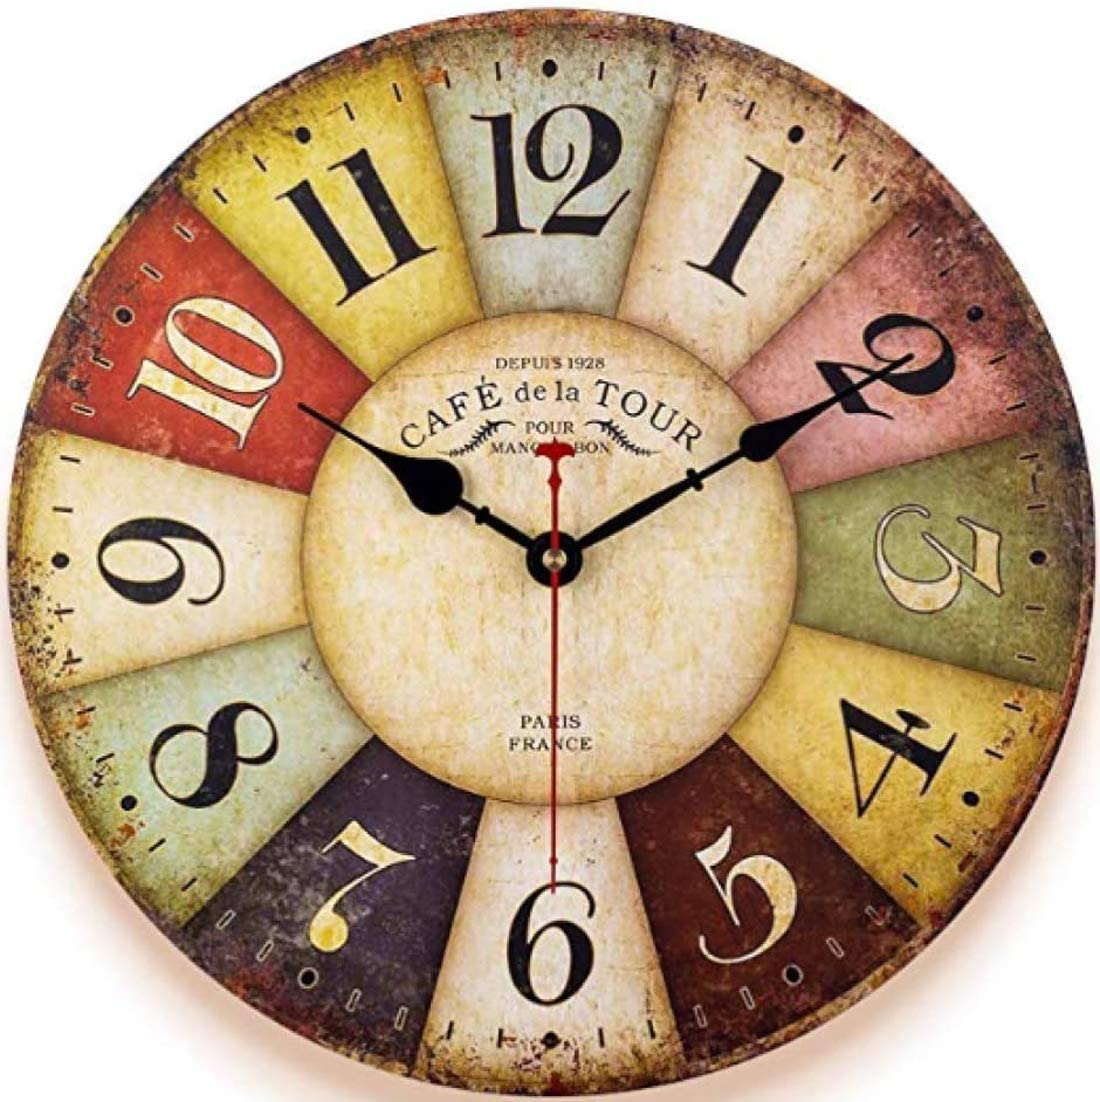 Amazon.com: Qukueoy 12 Inch Thick Wood Kitchen Wall Clock Retro Farmhouse  Clocks for Living Room Decor Bedroom Restaurant,Silent Battery  Operated,Colorful Tuscan Country Style: Home & Kitchen